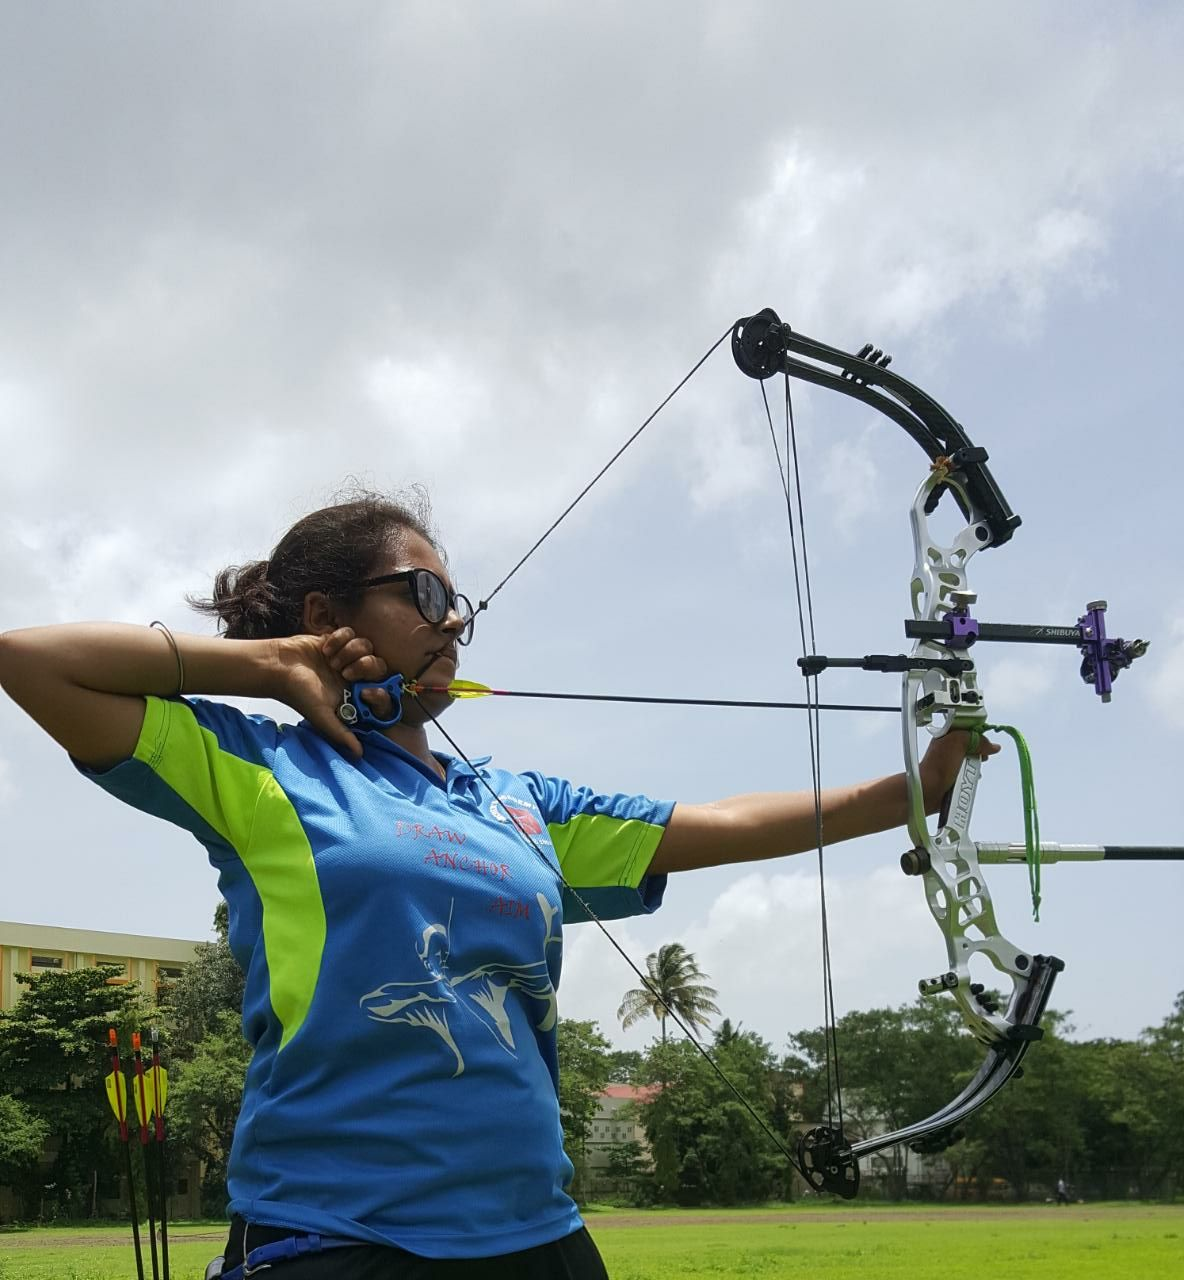 Disha Oswal During practice session of Archery